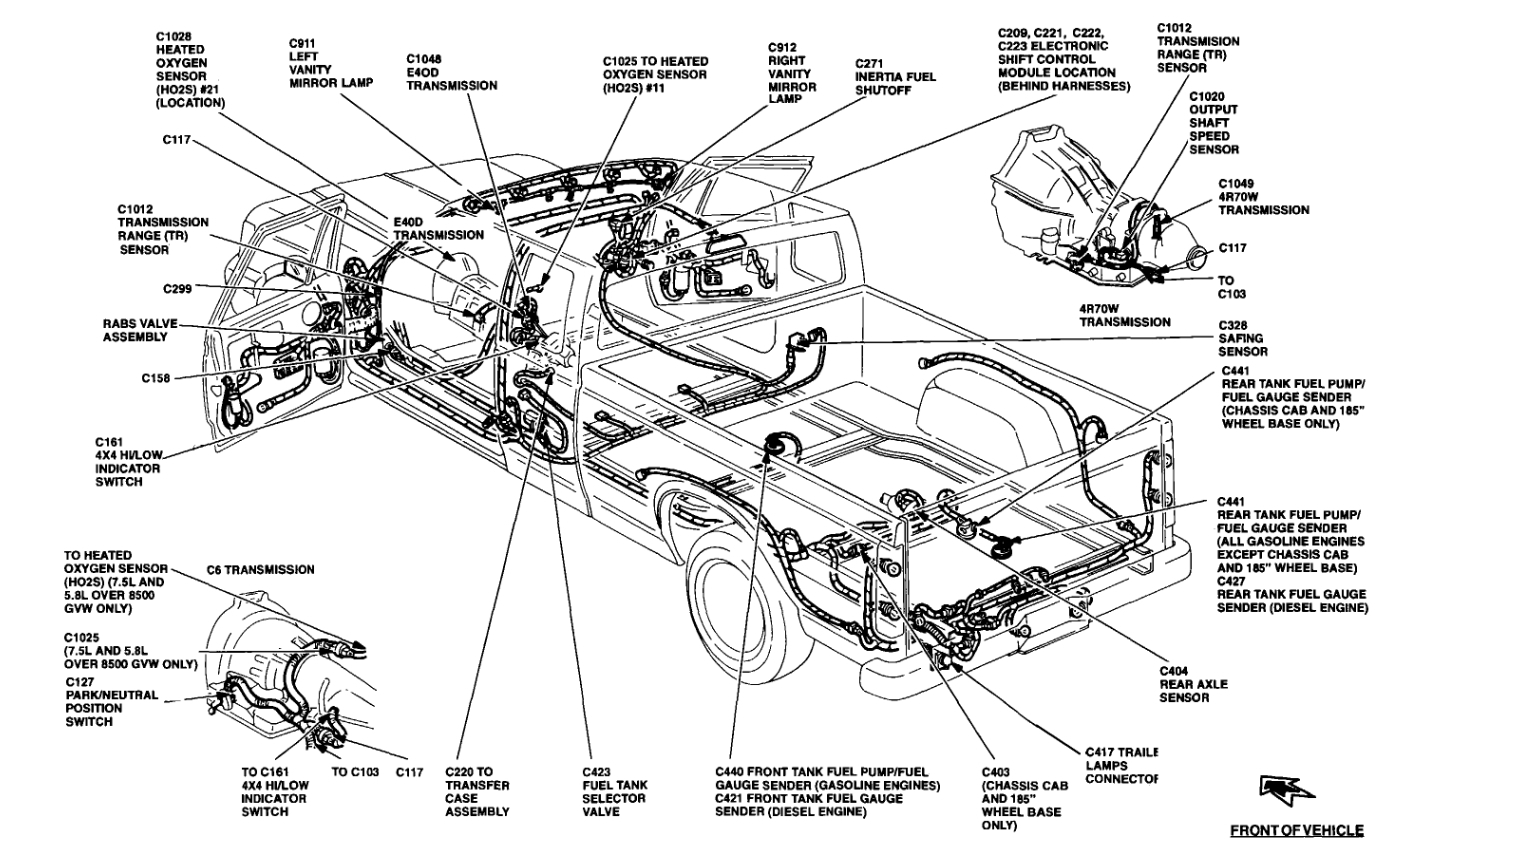 2000 Ford F150 Fuel Line Diagram Filter Wiring Diagrams Wet Updated Wet Updated Youruralnet It